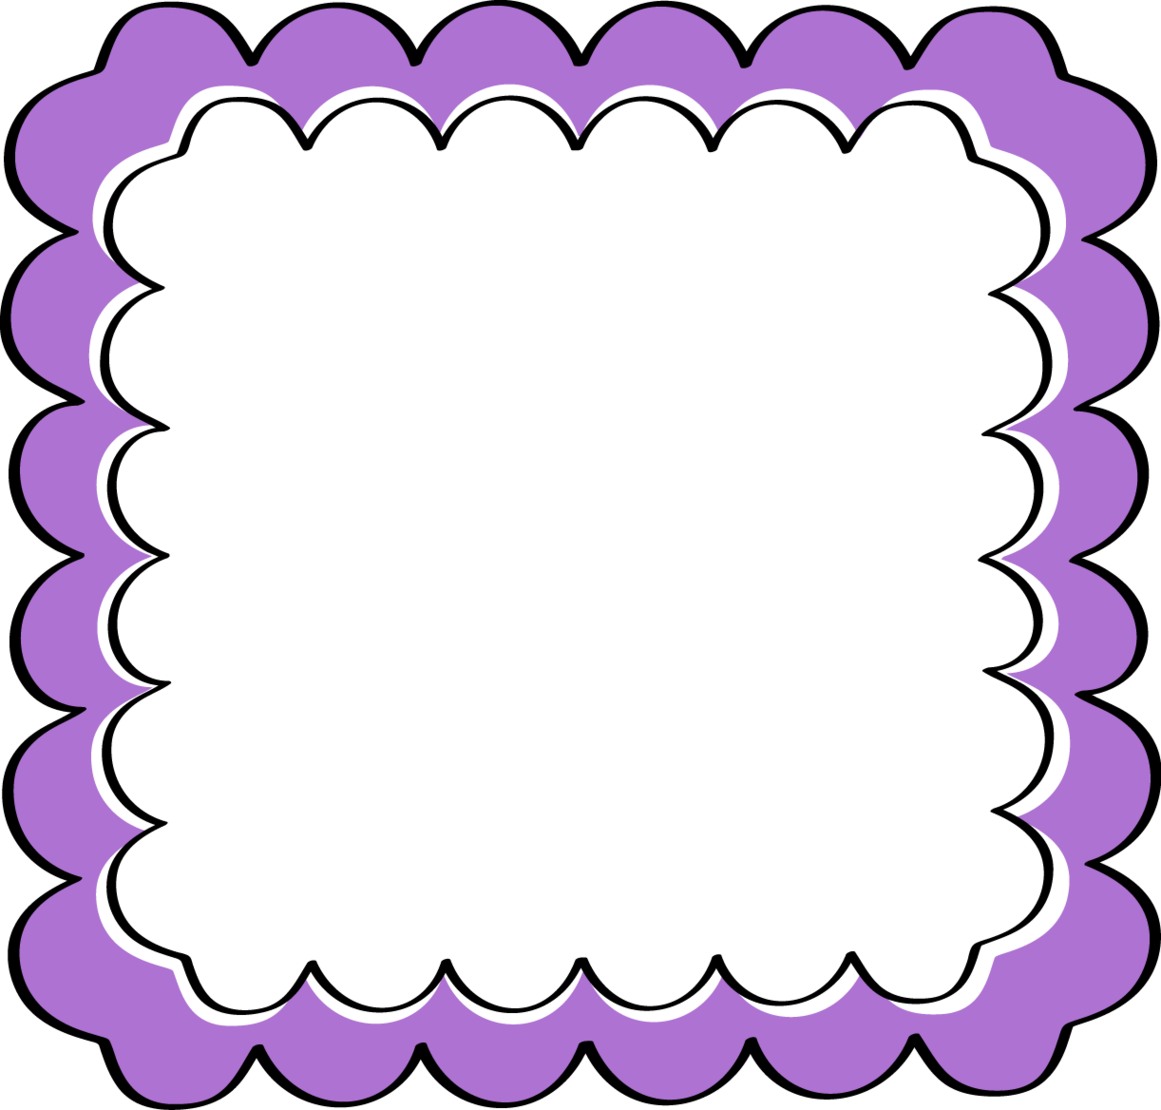 Purple Chevron Border Clipart - Free to use Clip Art Resource